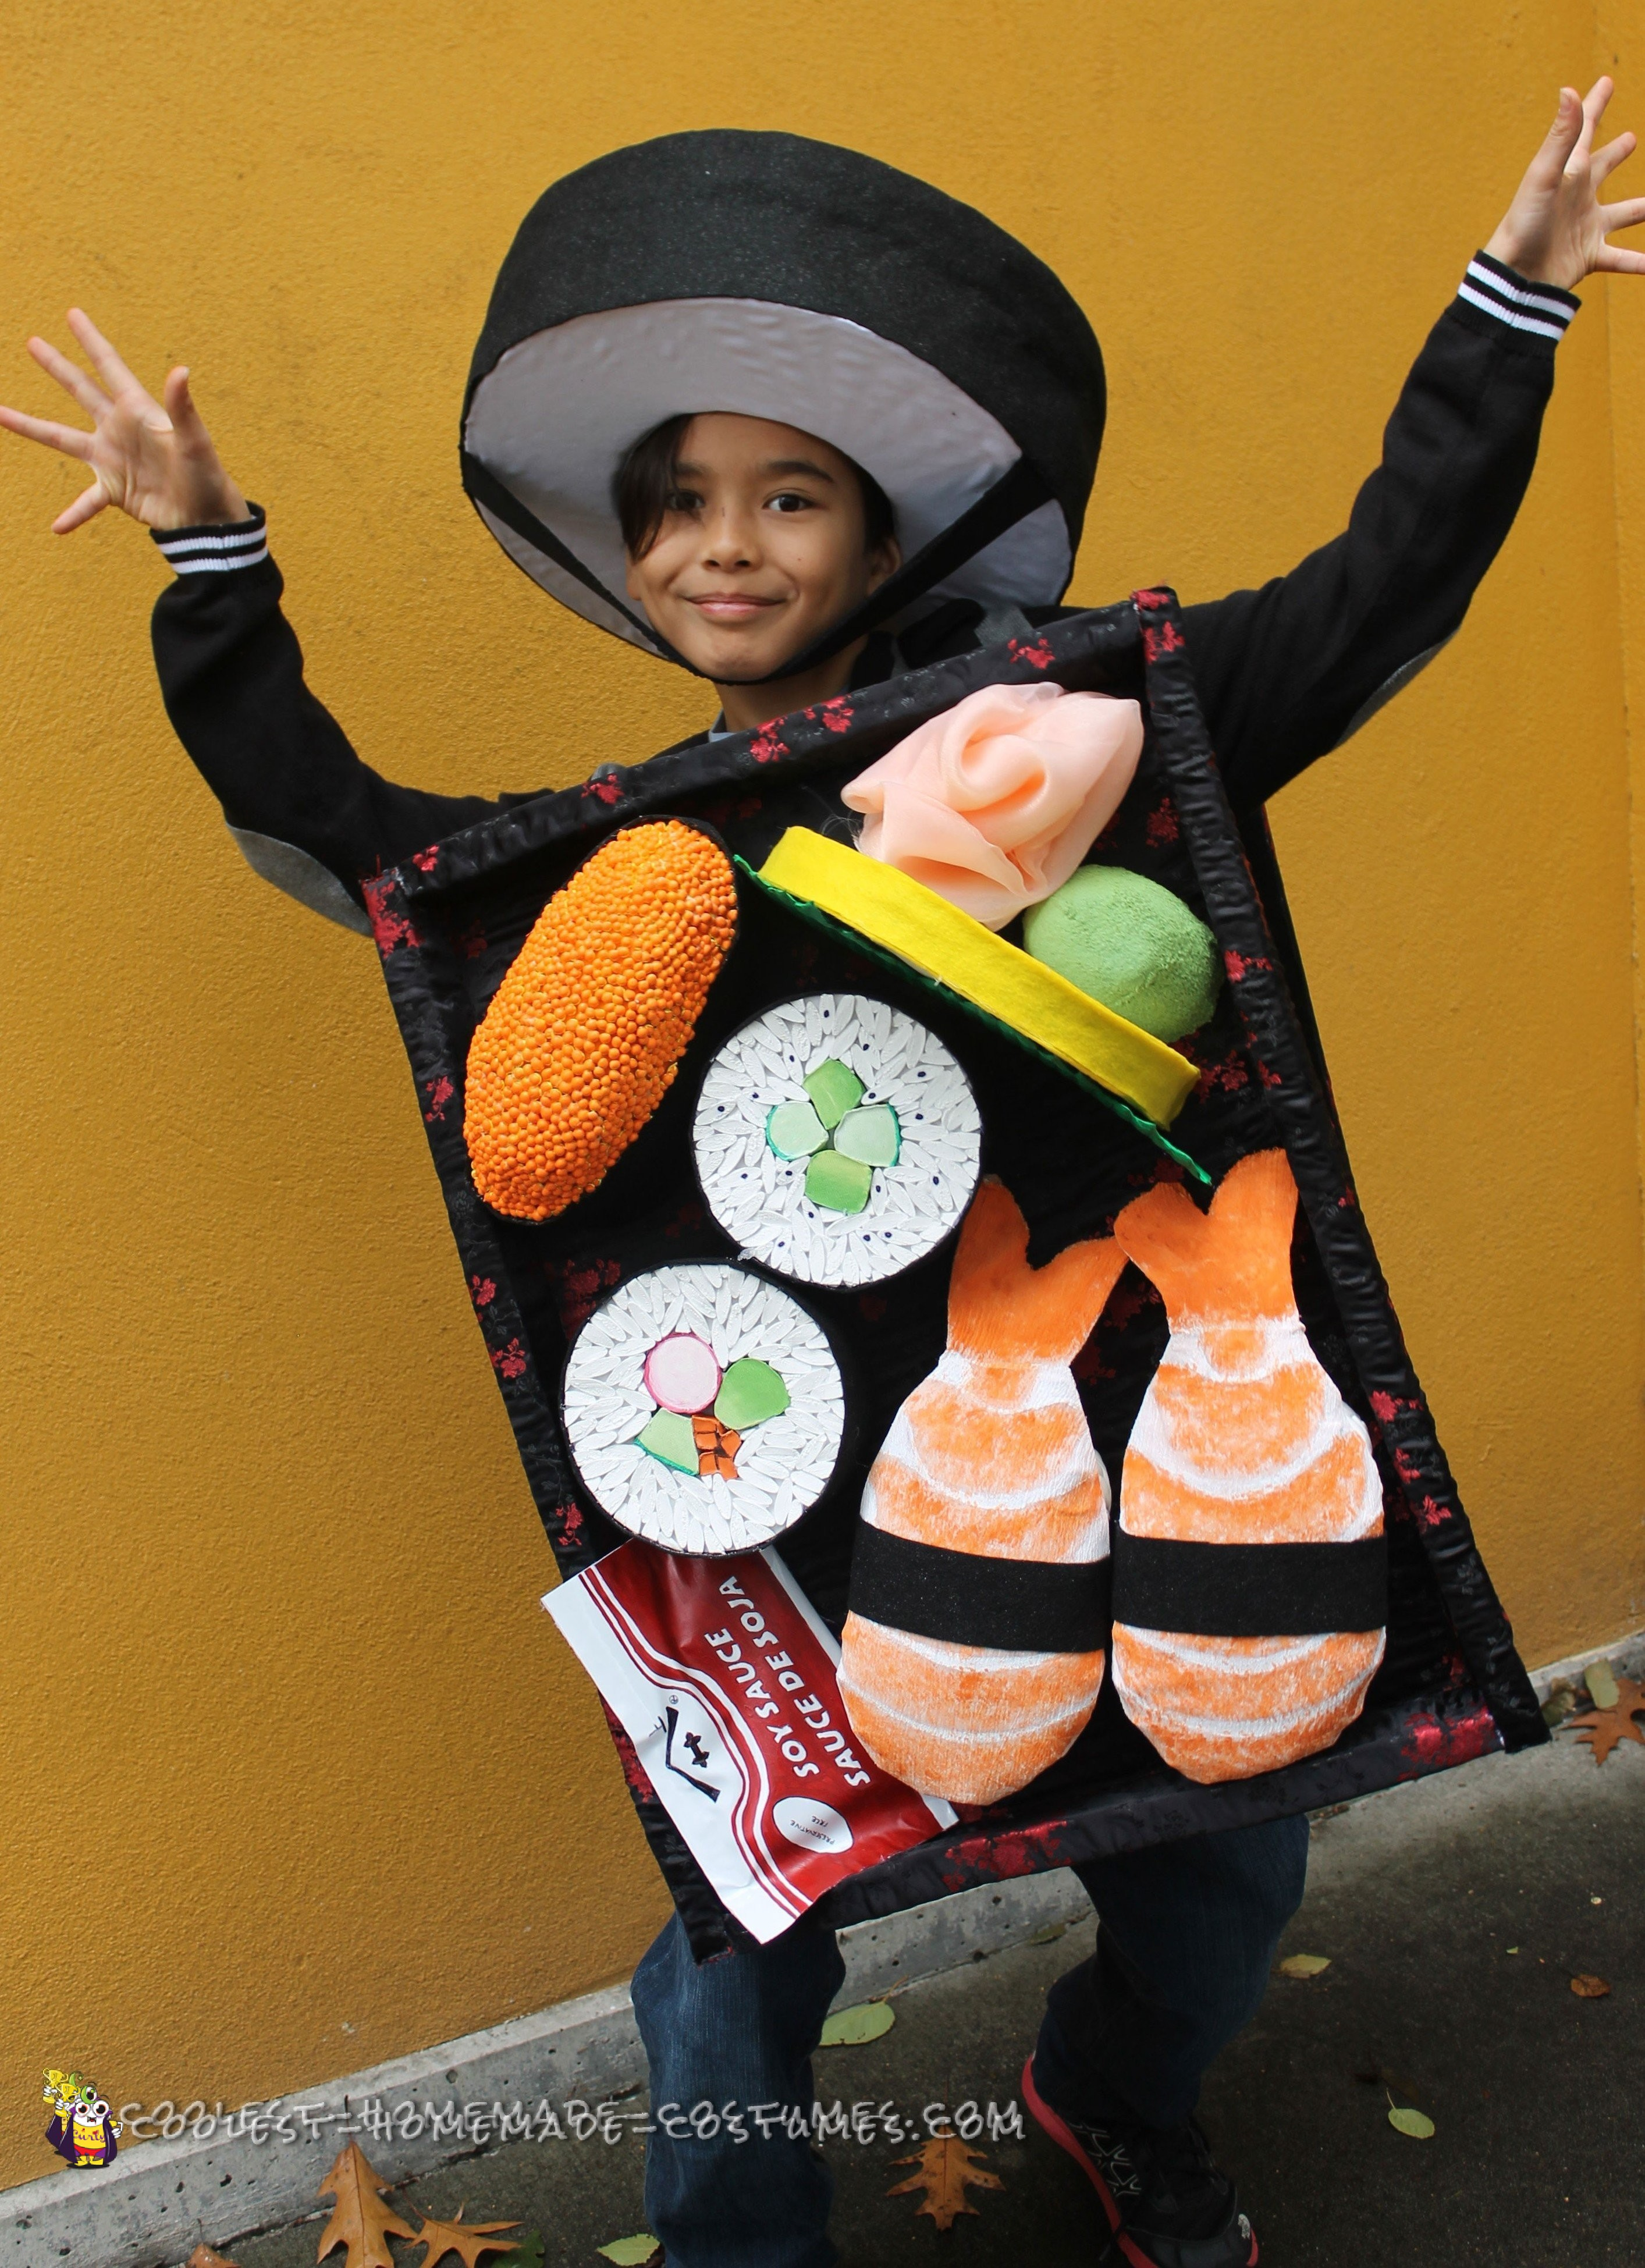 hooray for the sushi tray costume